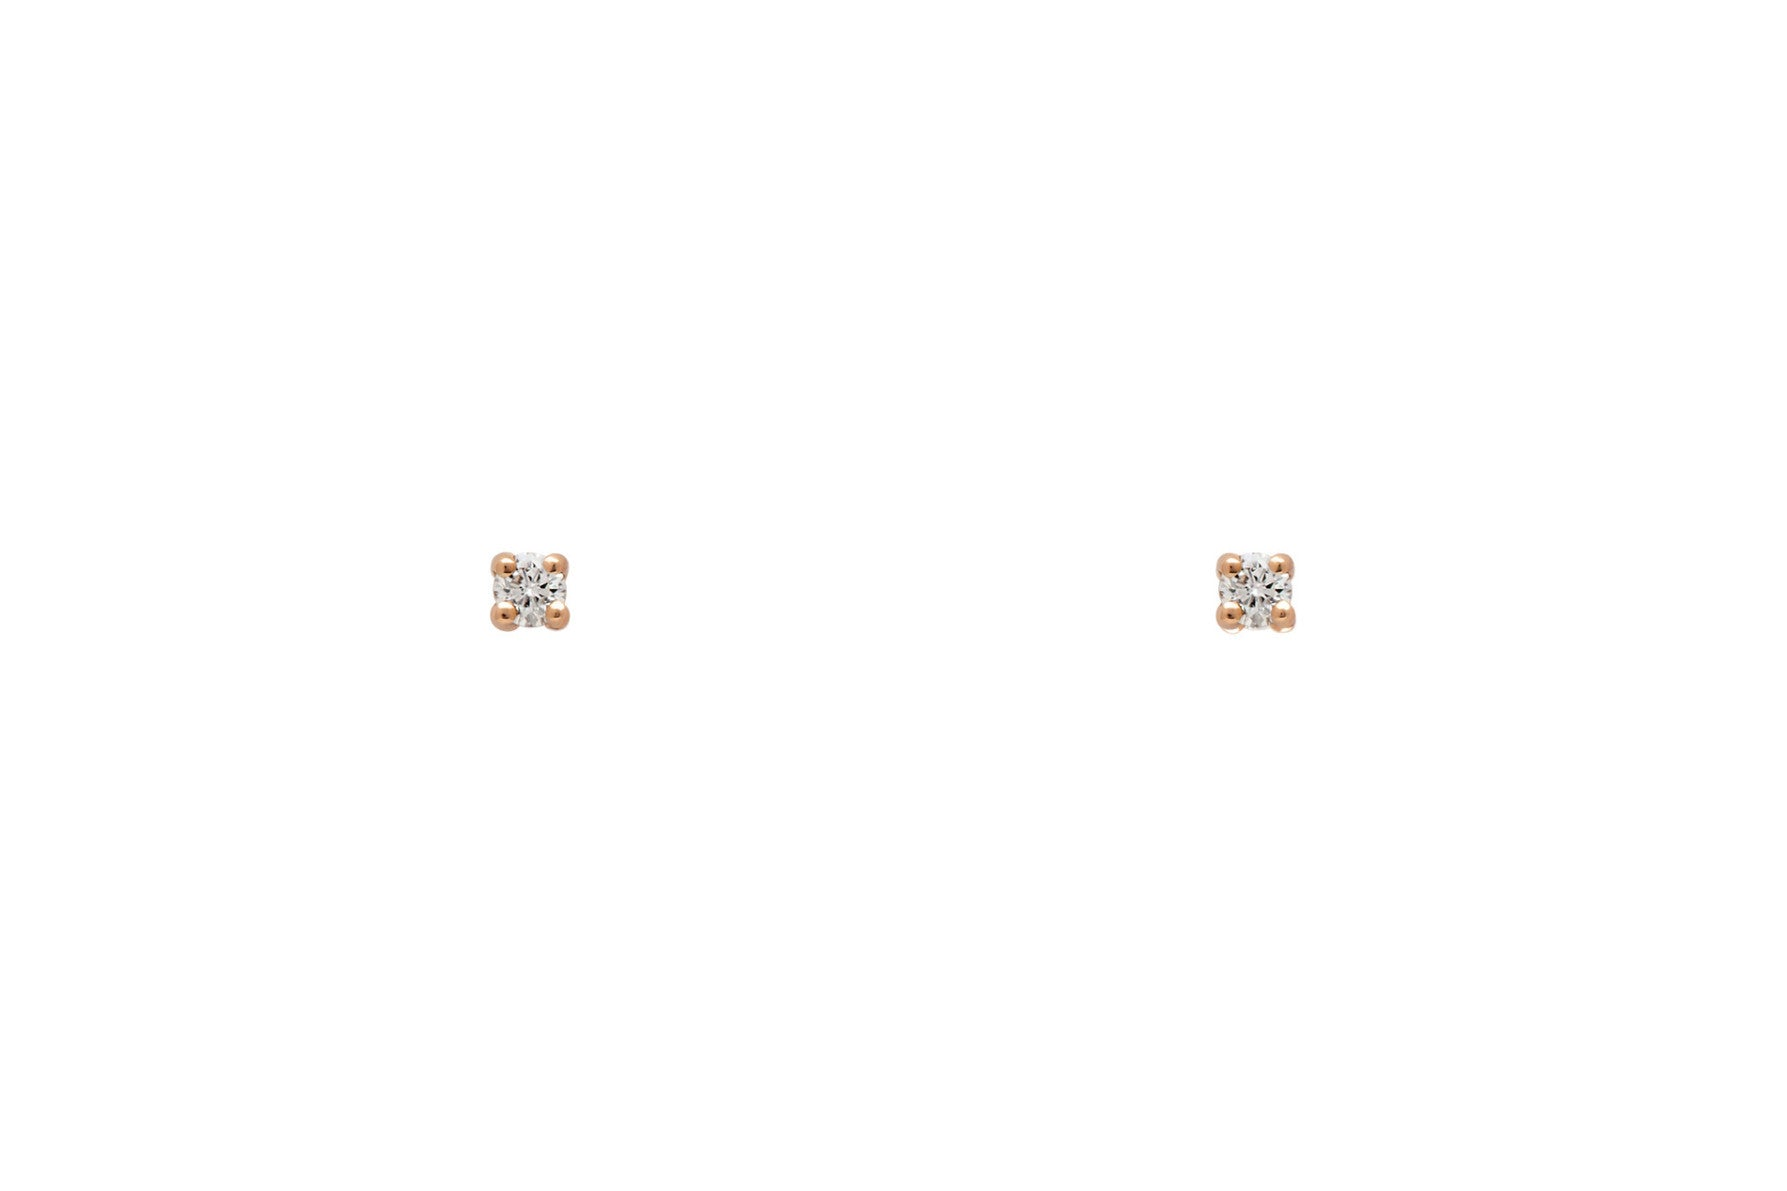 Tiny White Diamond Stud Earrings - Rose Gold